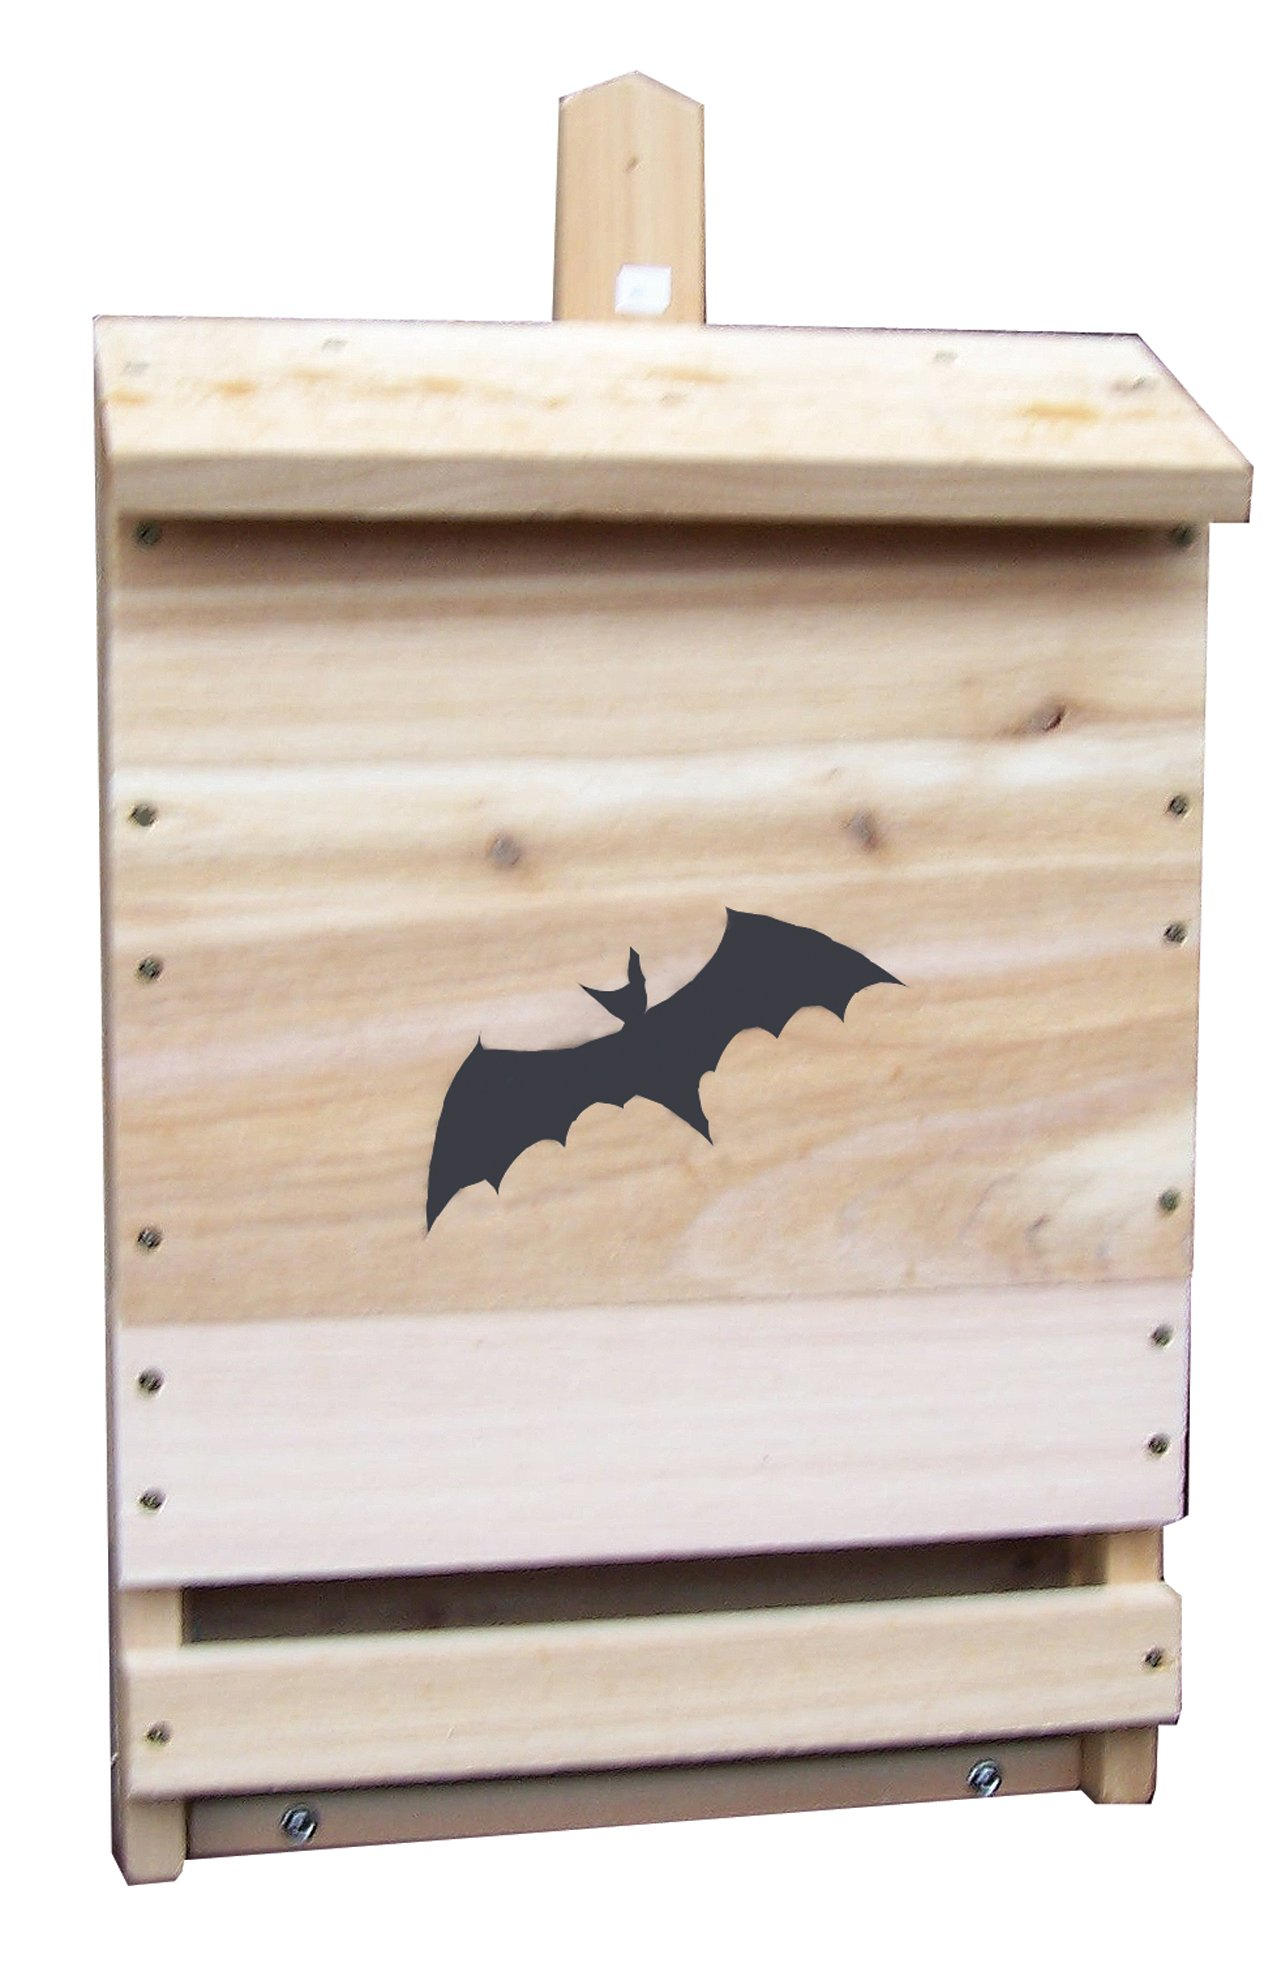 Stovall 3K Single Cell Bat House Kit